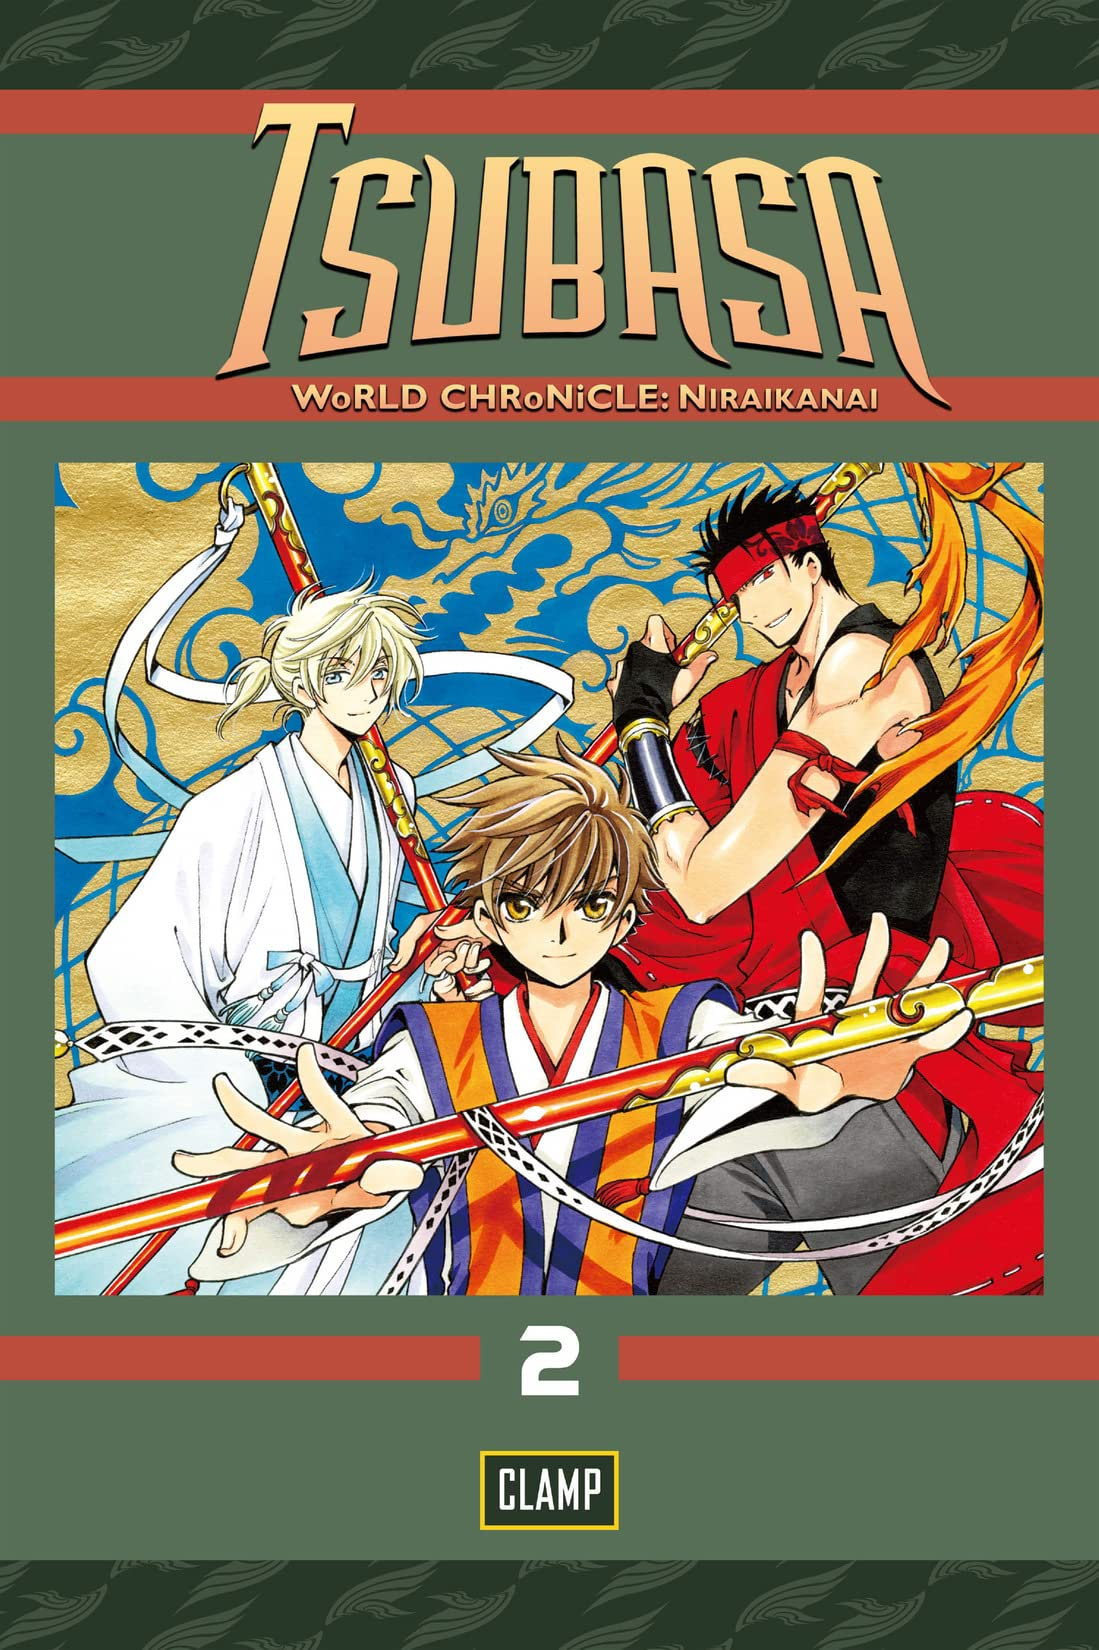 Tsubasa: WoRLD CHRoNiCLE: Niraikanai Vol. 2